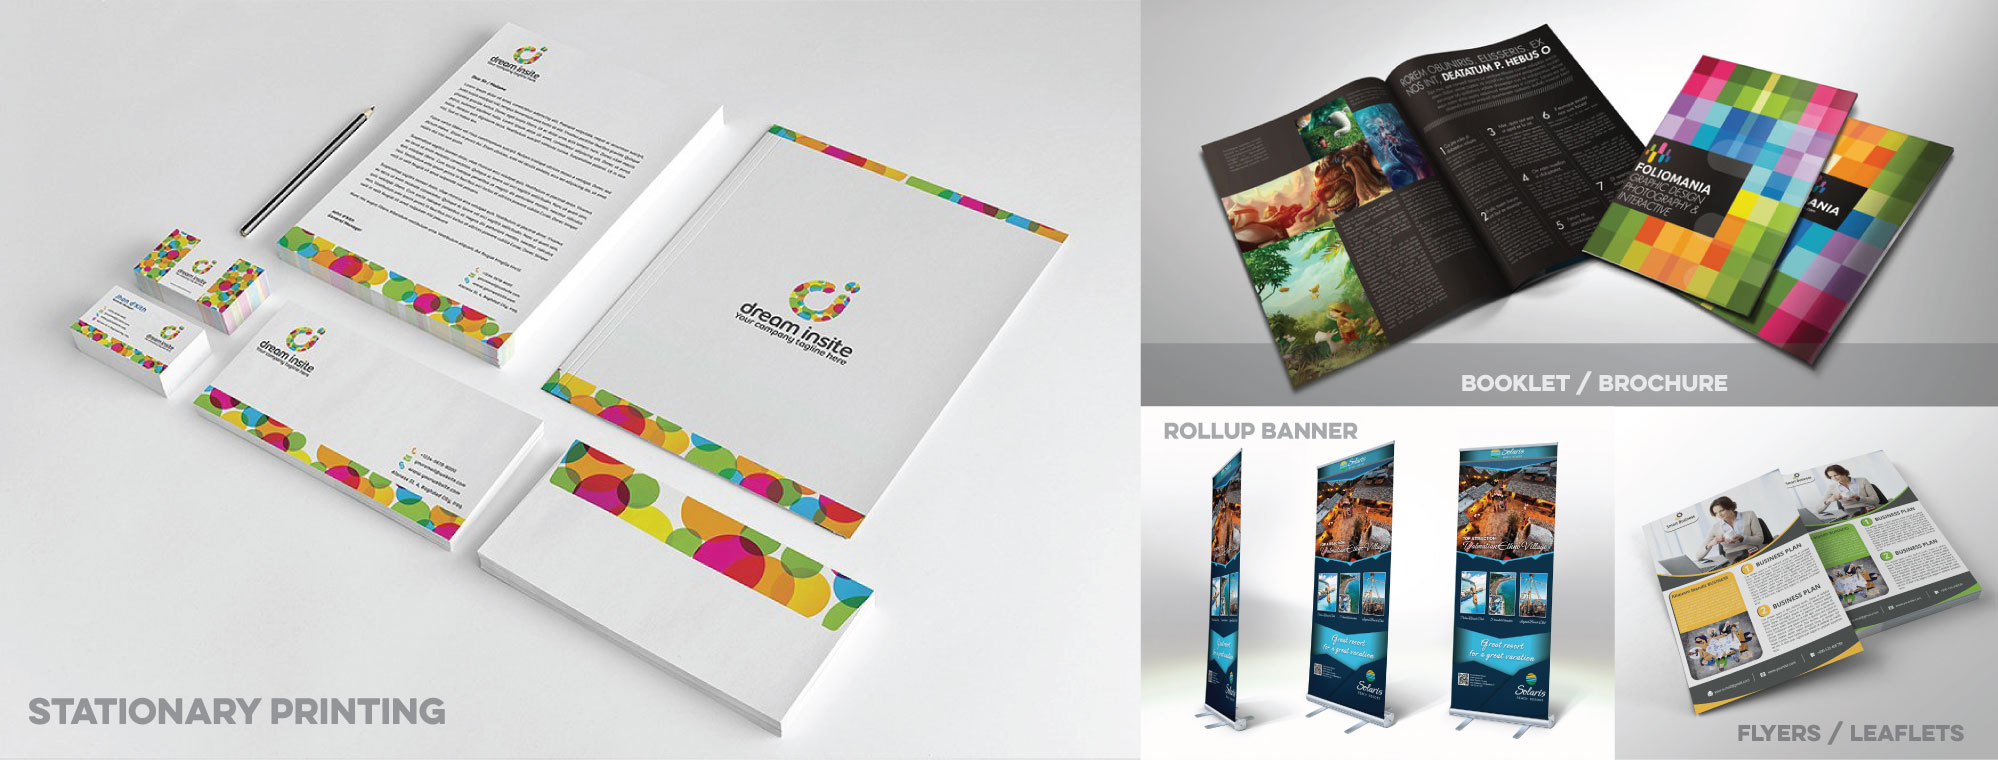 Online Printing Service UK - Flyer and Leaflet Printing | Home